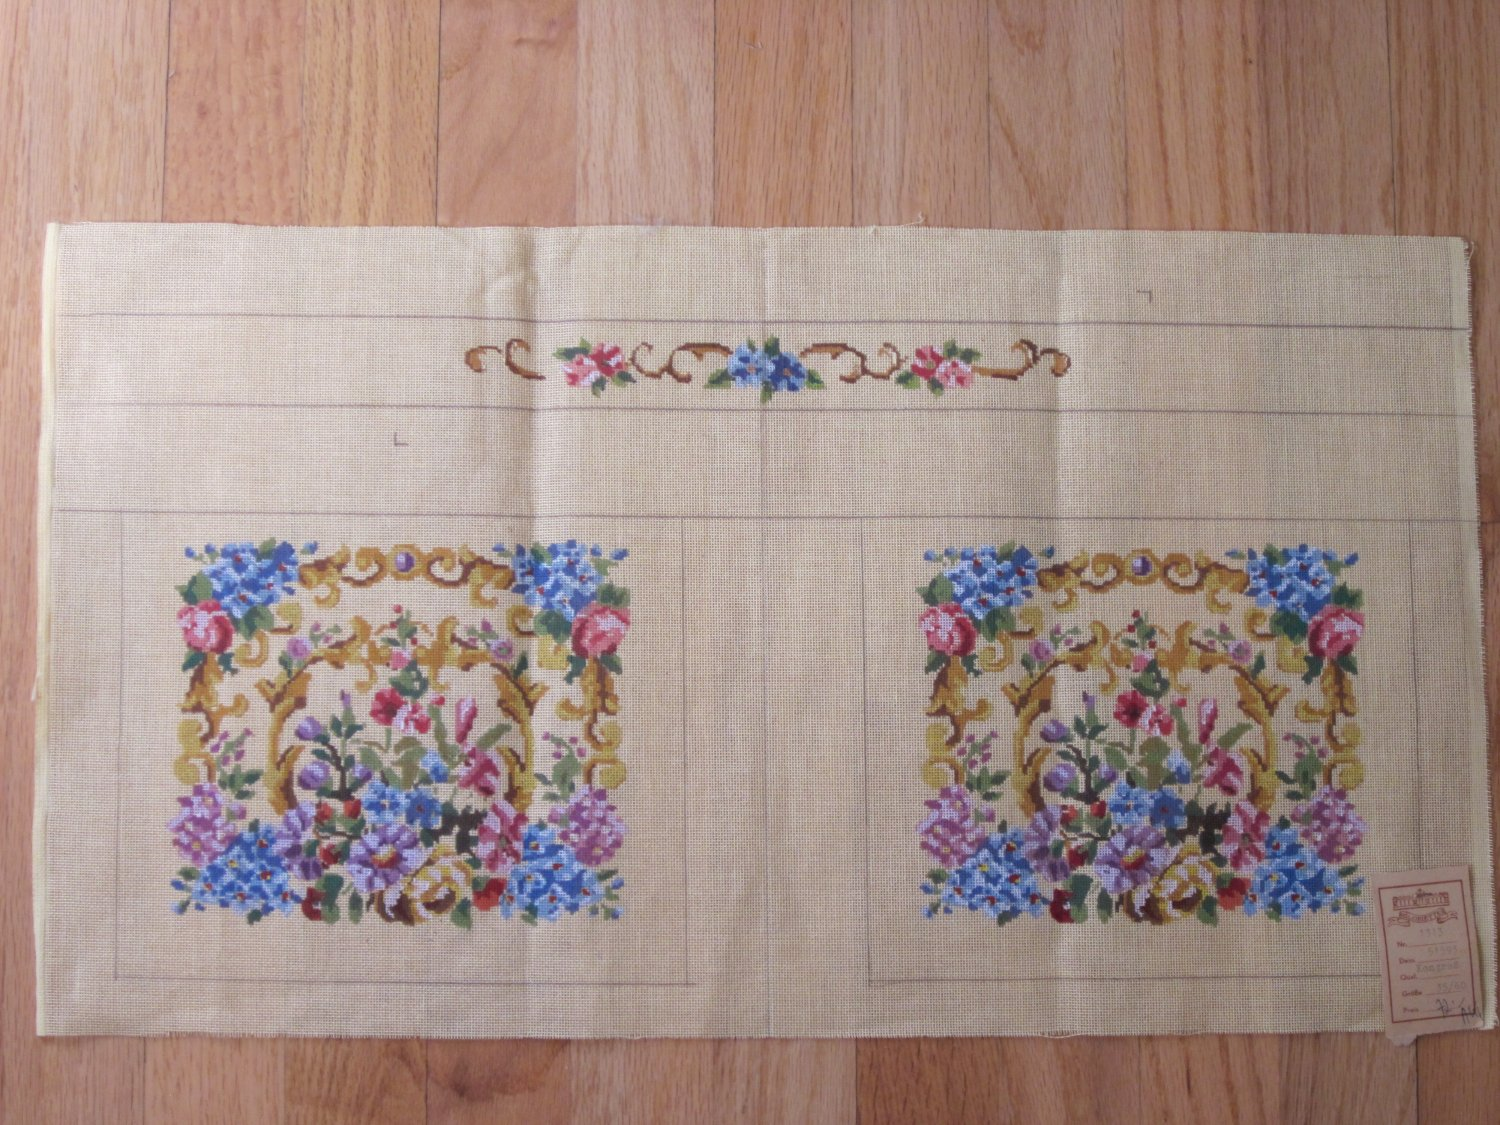 Vintage French Needlepoint Canvas for Purse, Handbag Free Shipping